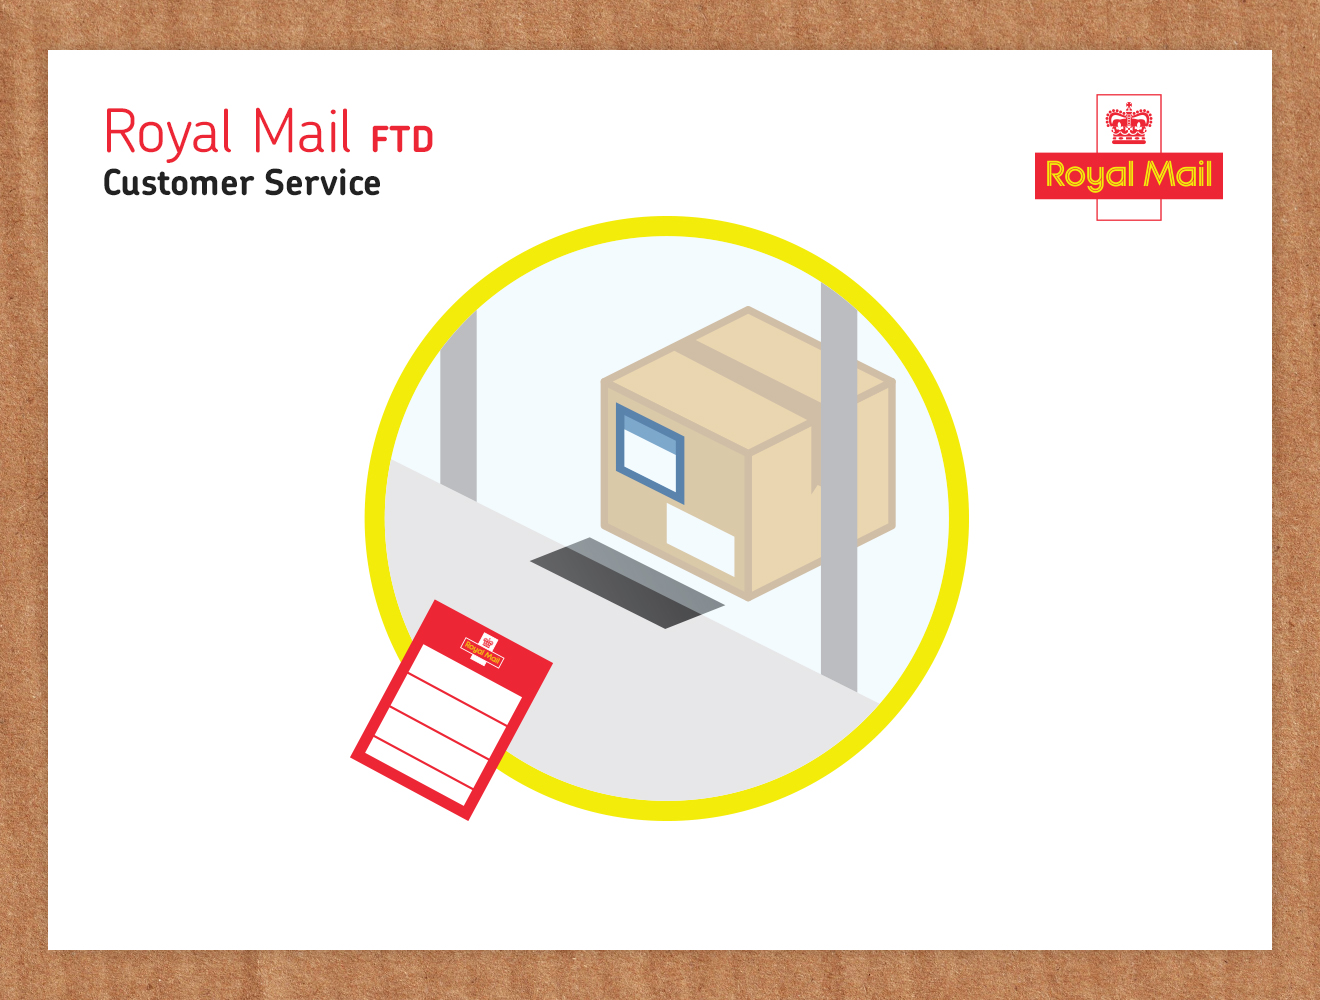 First Time Delivery Icon designed by me & alan for Royal Mail